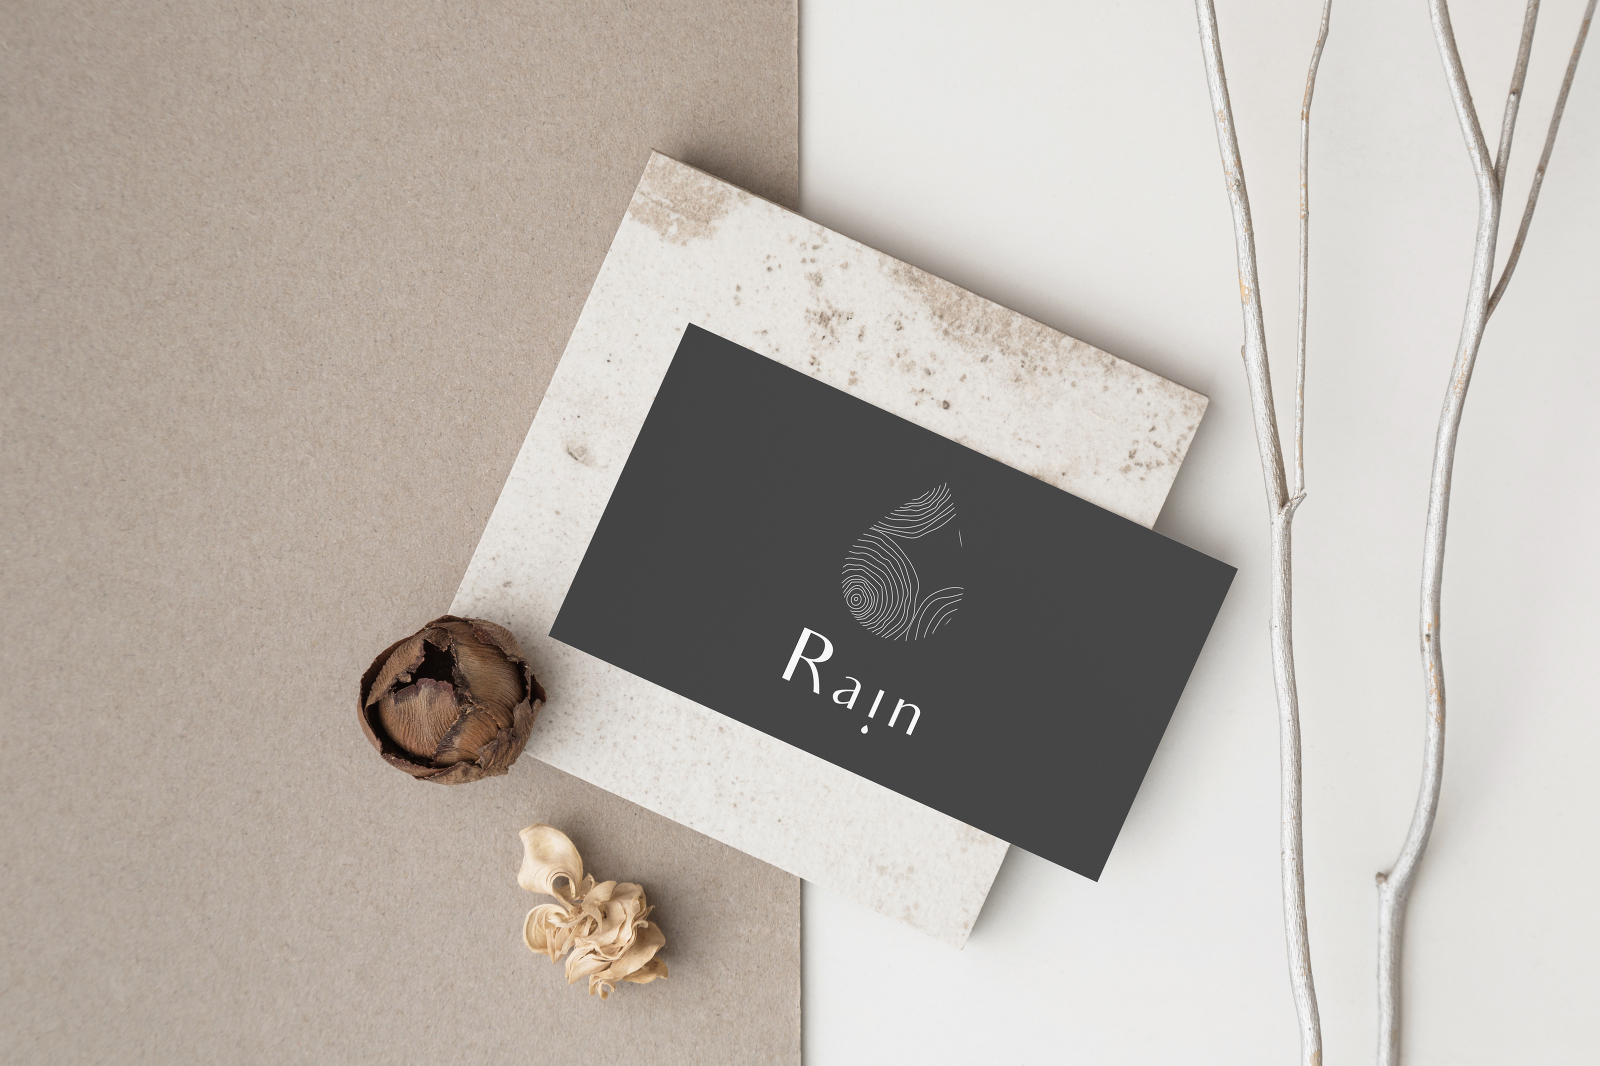 charlottehedley_branding-conceptontwikkeling-design-project Rain